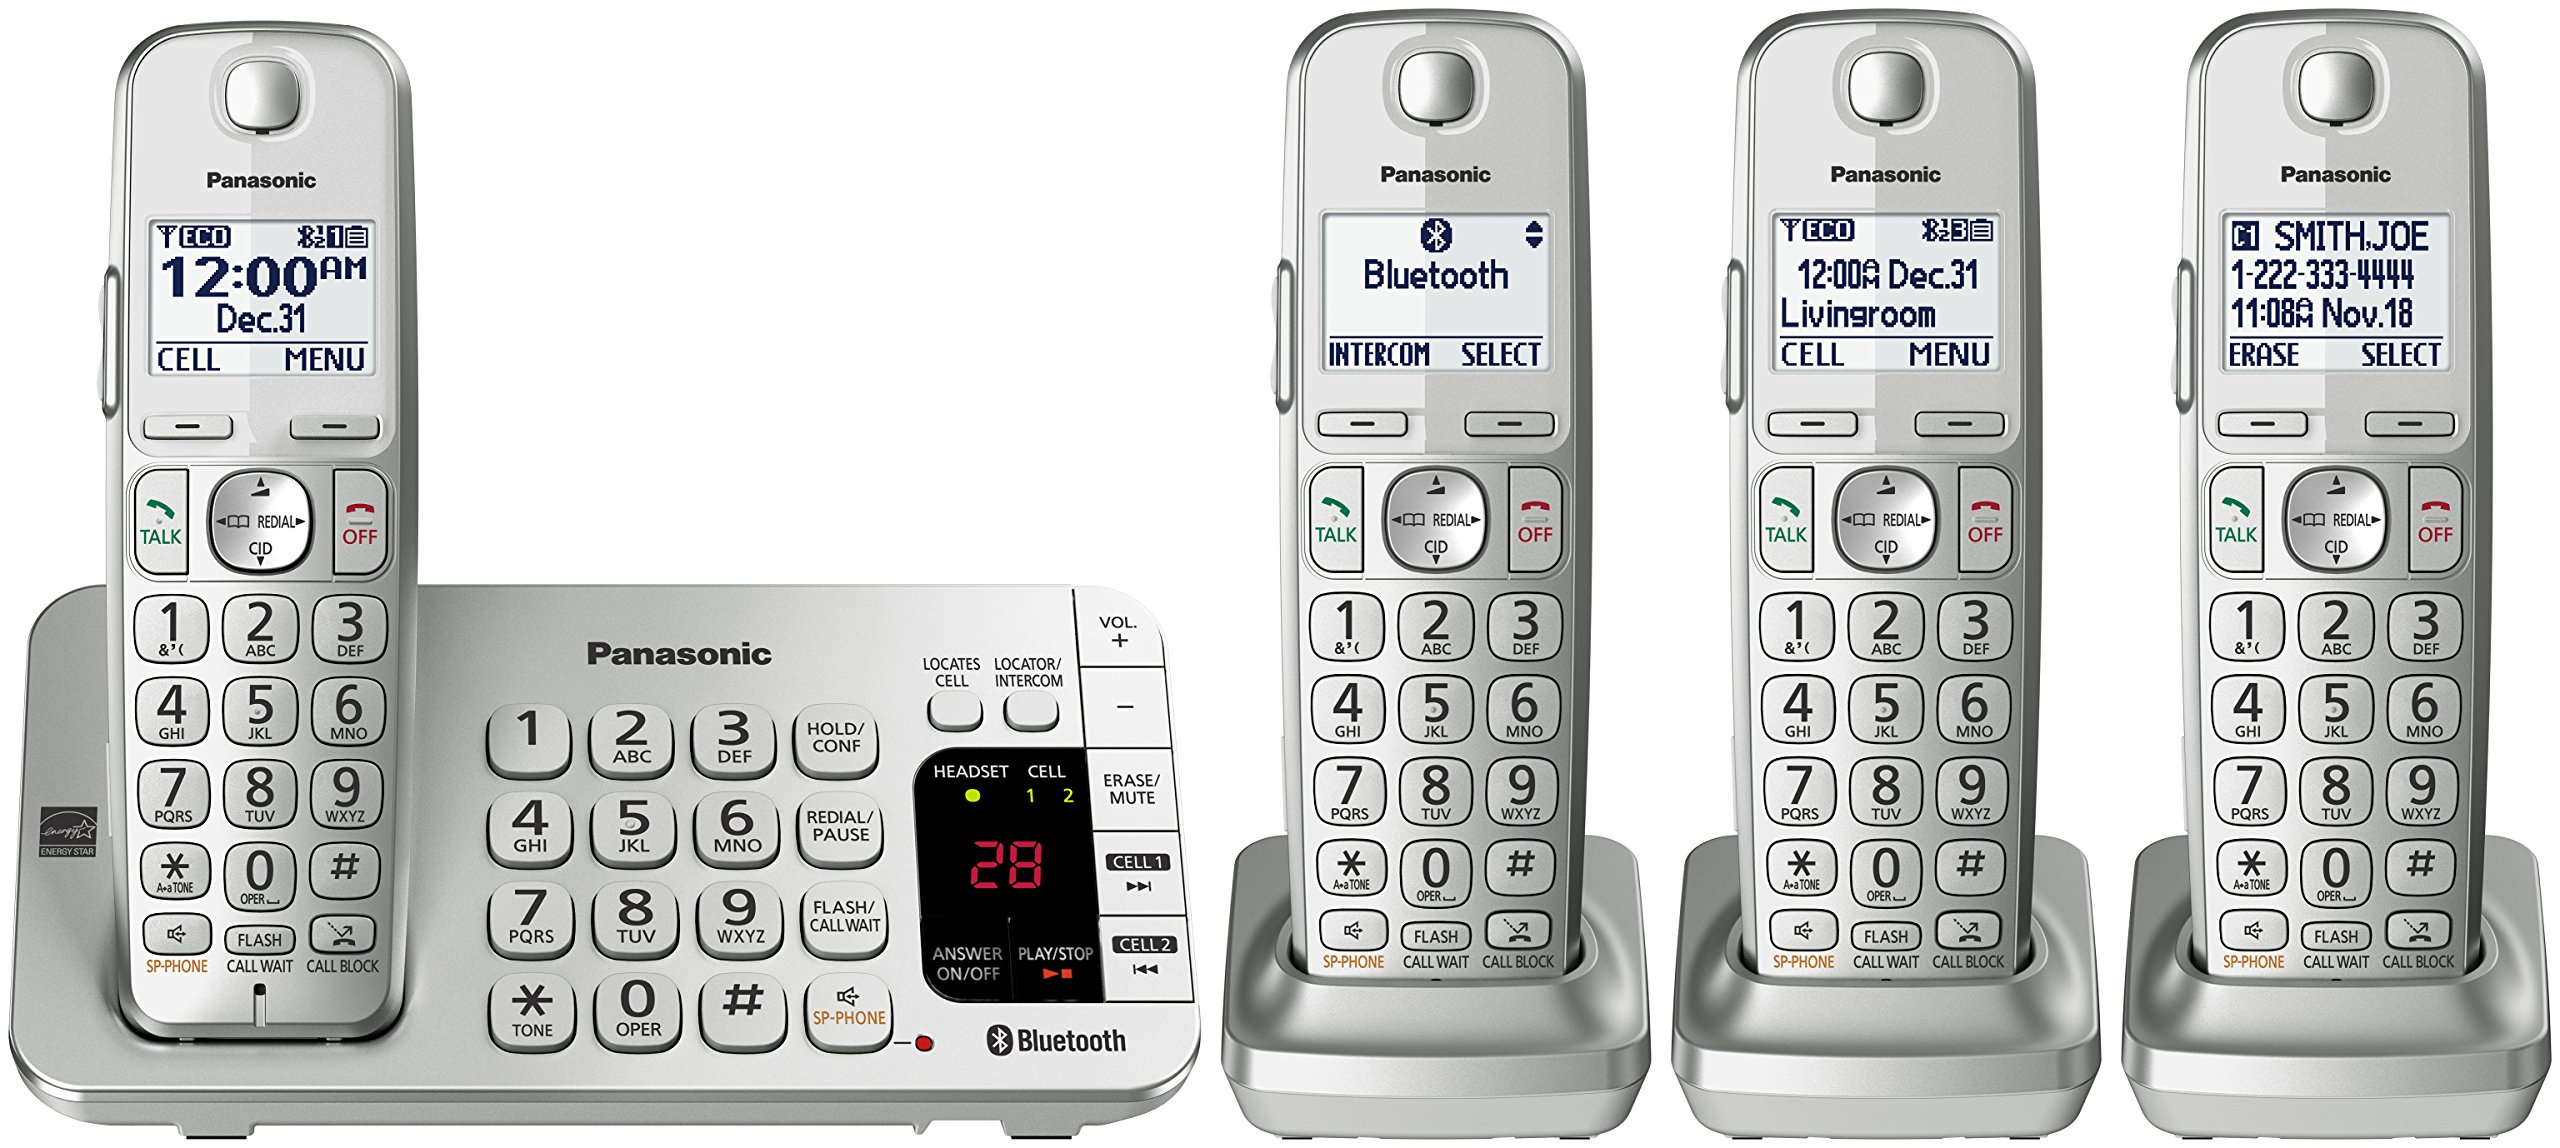 PANASONIC Link2Cell Bluetooth Cordless DECT 6.0 Expandable Phone System with Answering Machine and Enhanced Noise Reduction - 4 Handsets - KX-TGE474S (Silver) by Panasonic